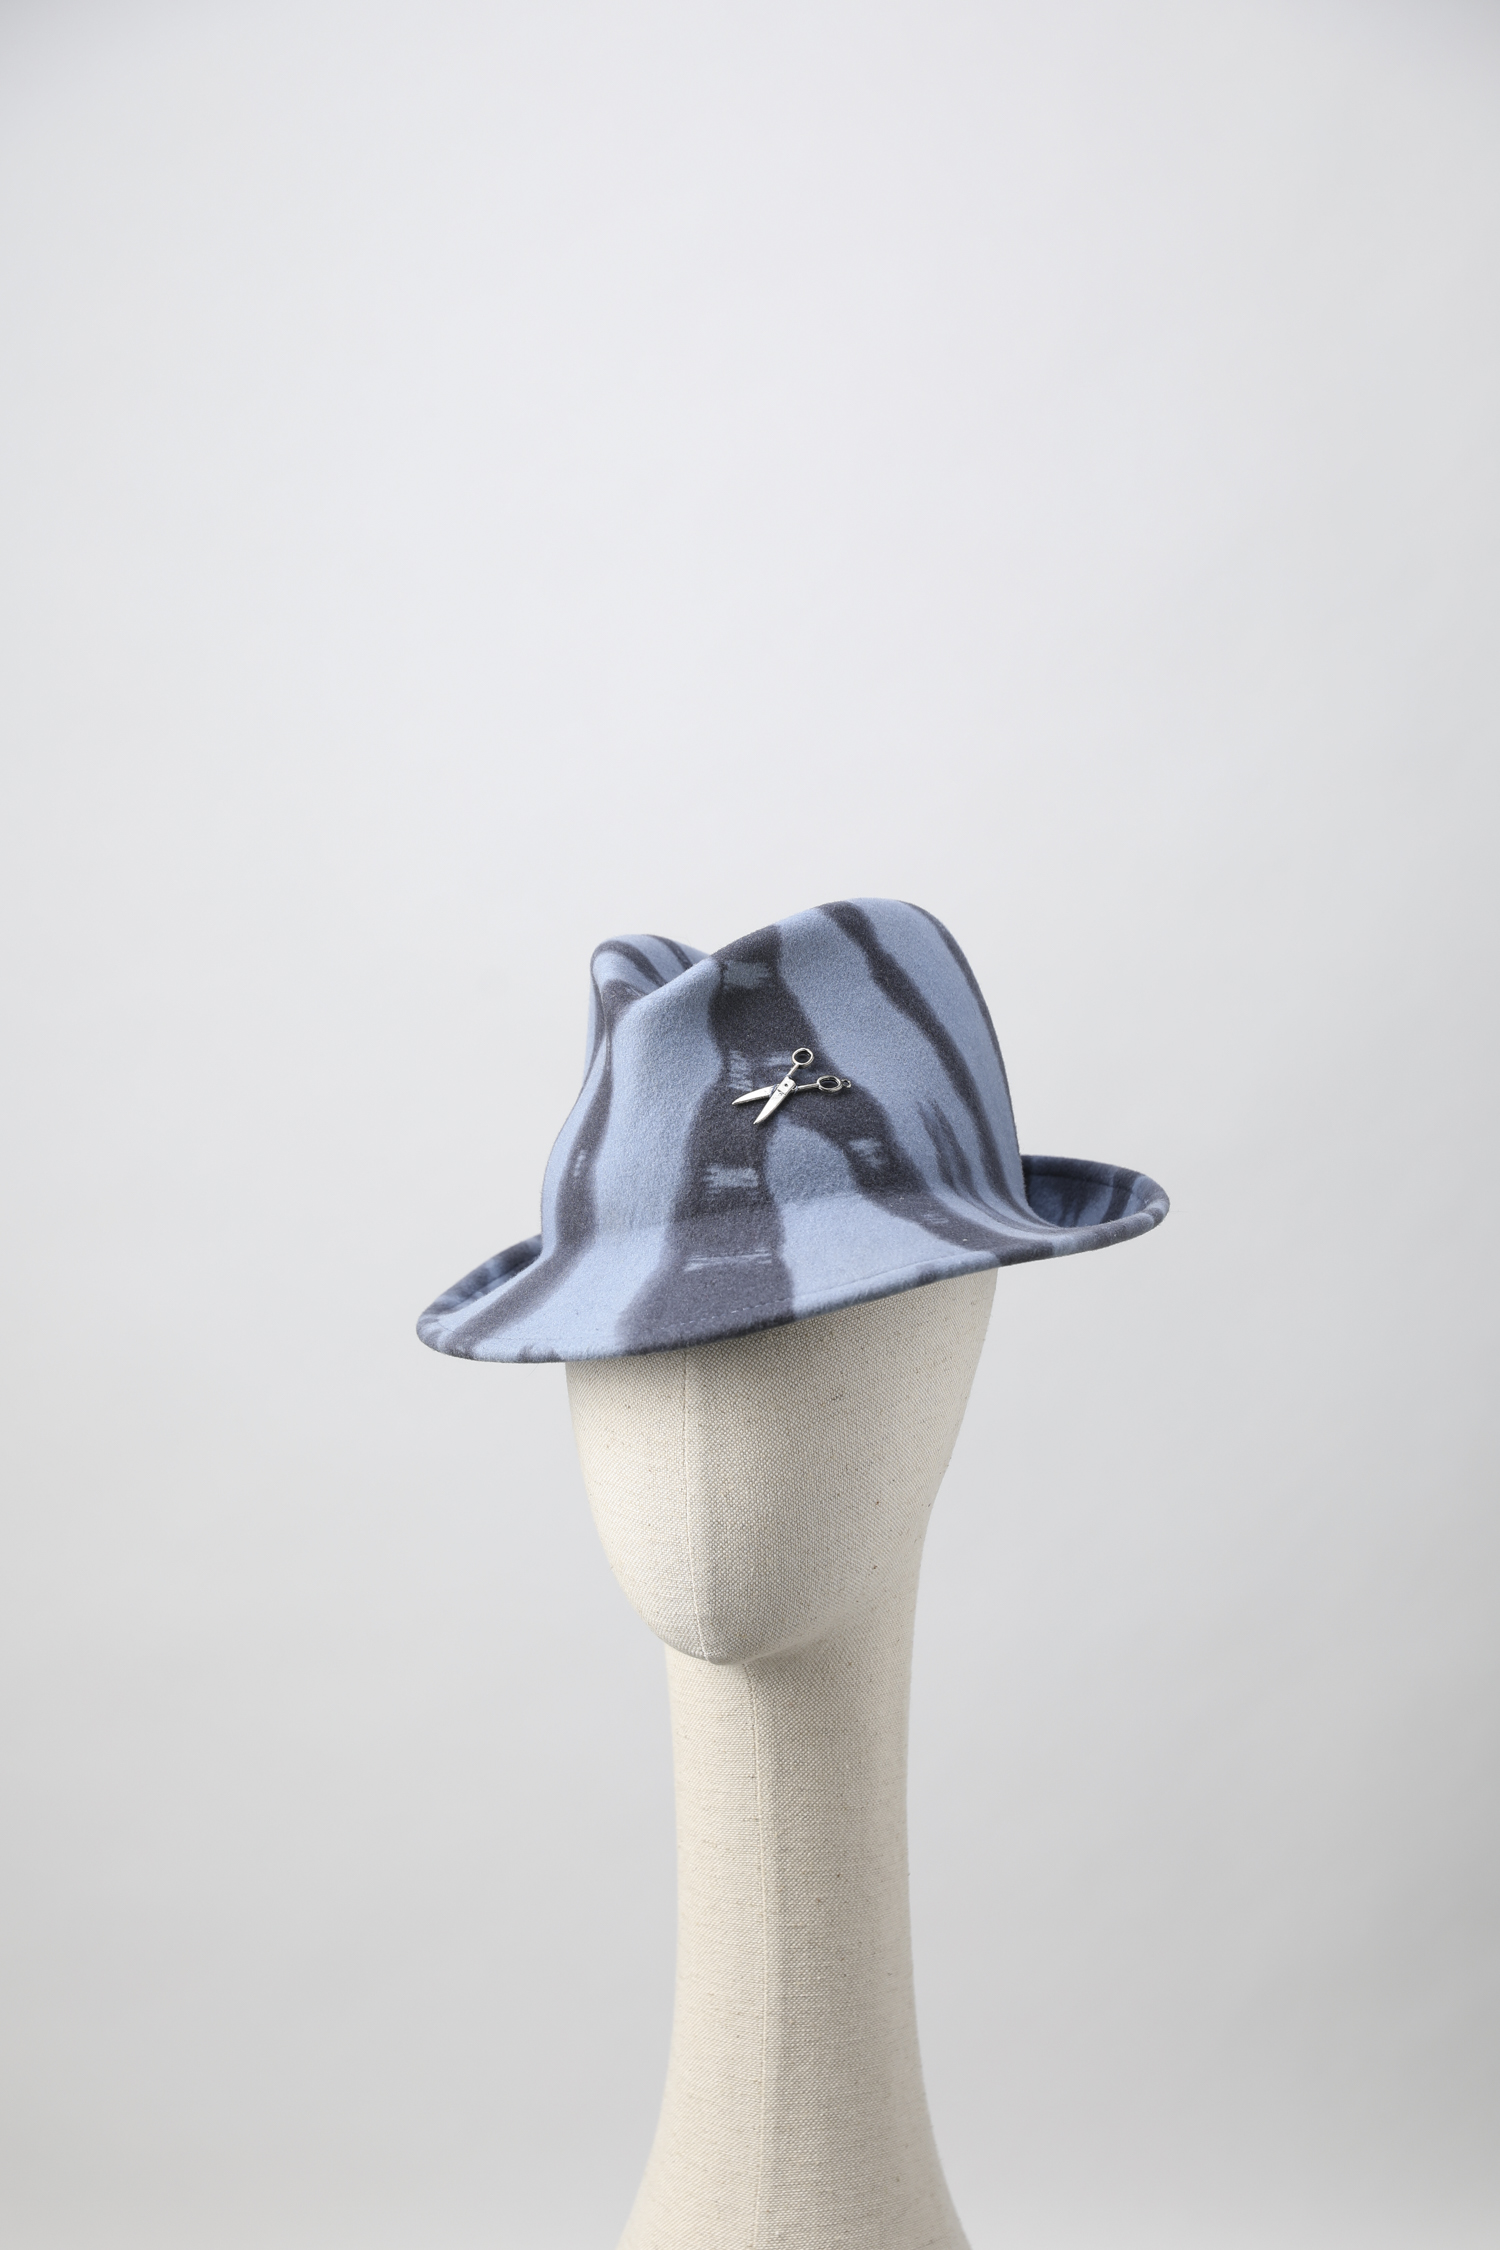 Copy of Jaycow Millinery by Jay Cheng Sample Stock 2019 (44).jpg